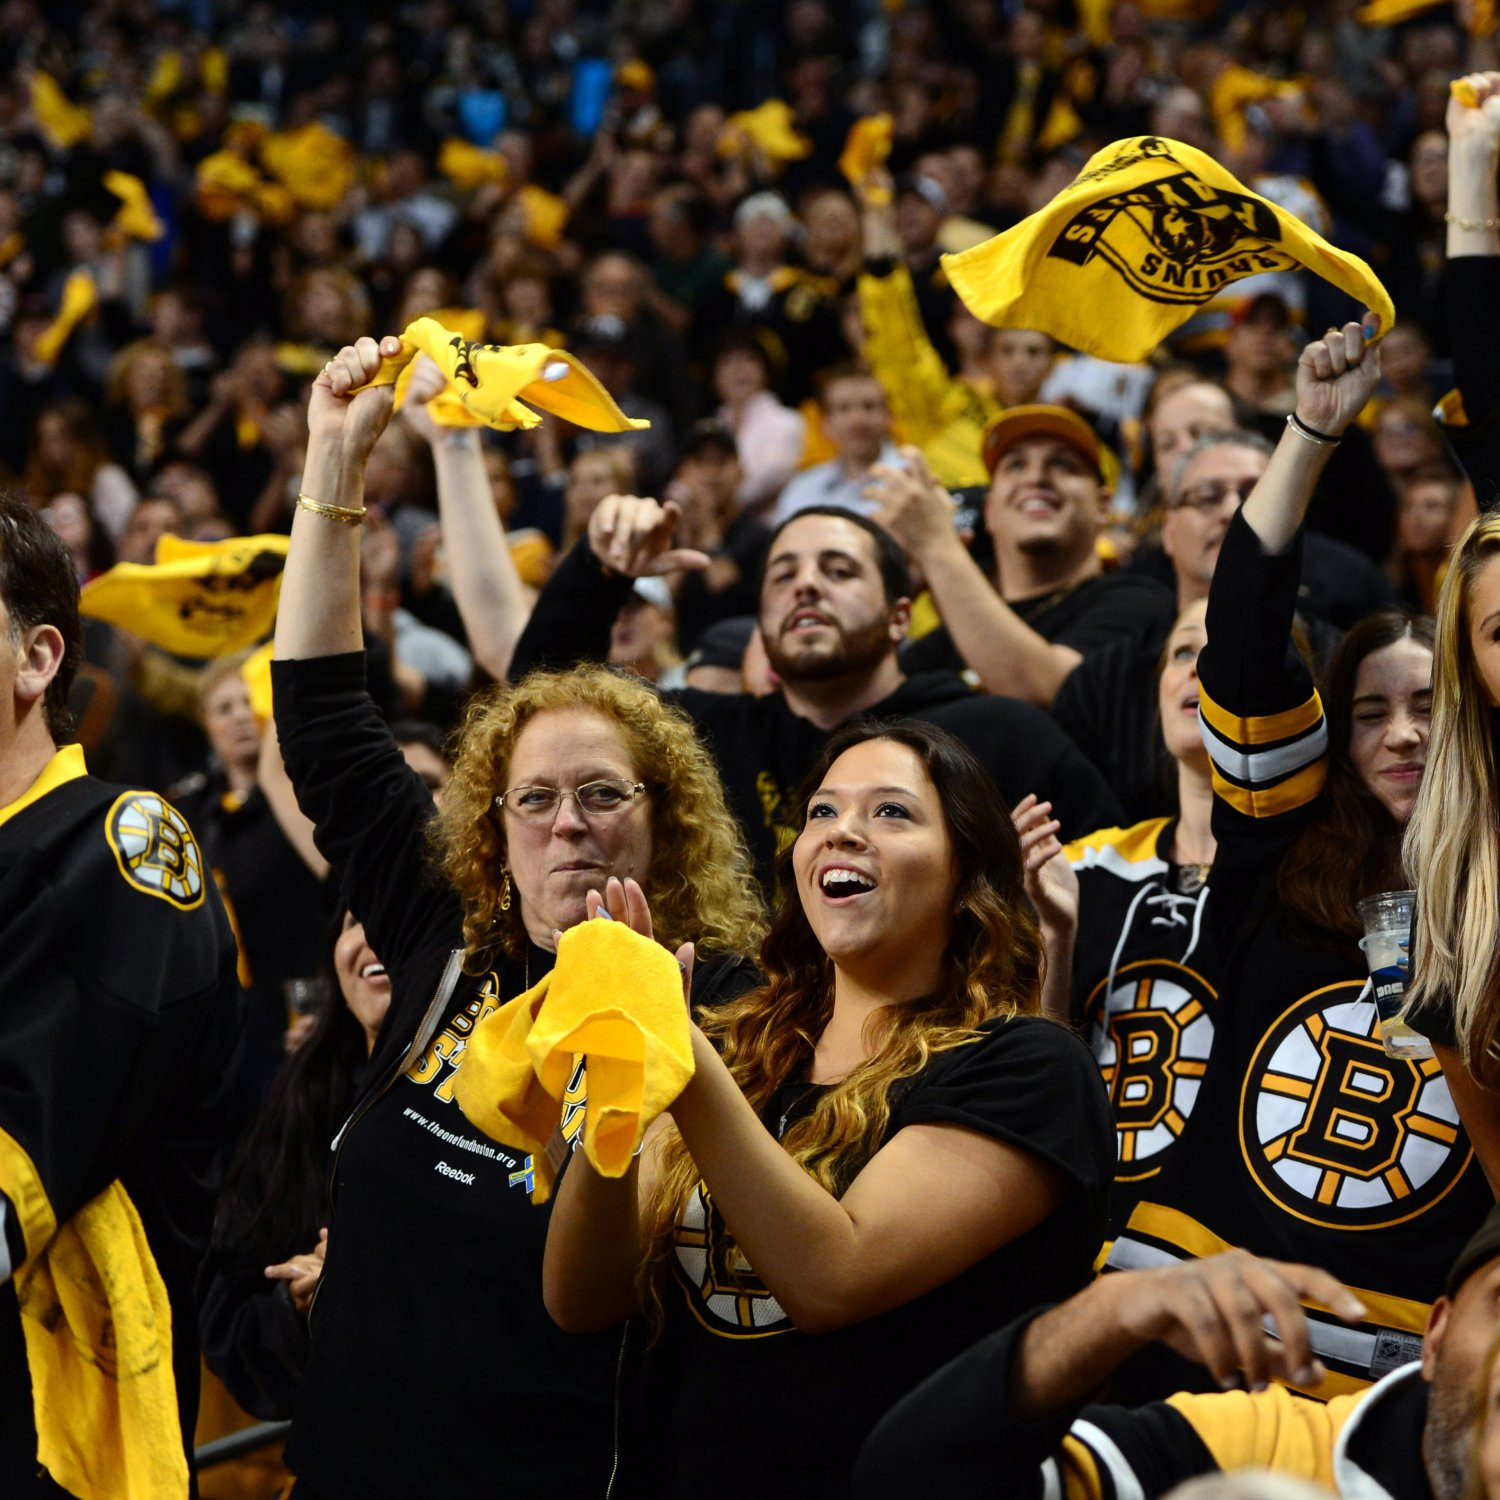 5 Websites Every Boston Bruins Fan Should Have Bookmarked